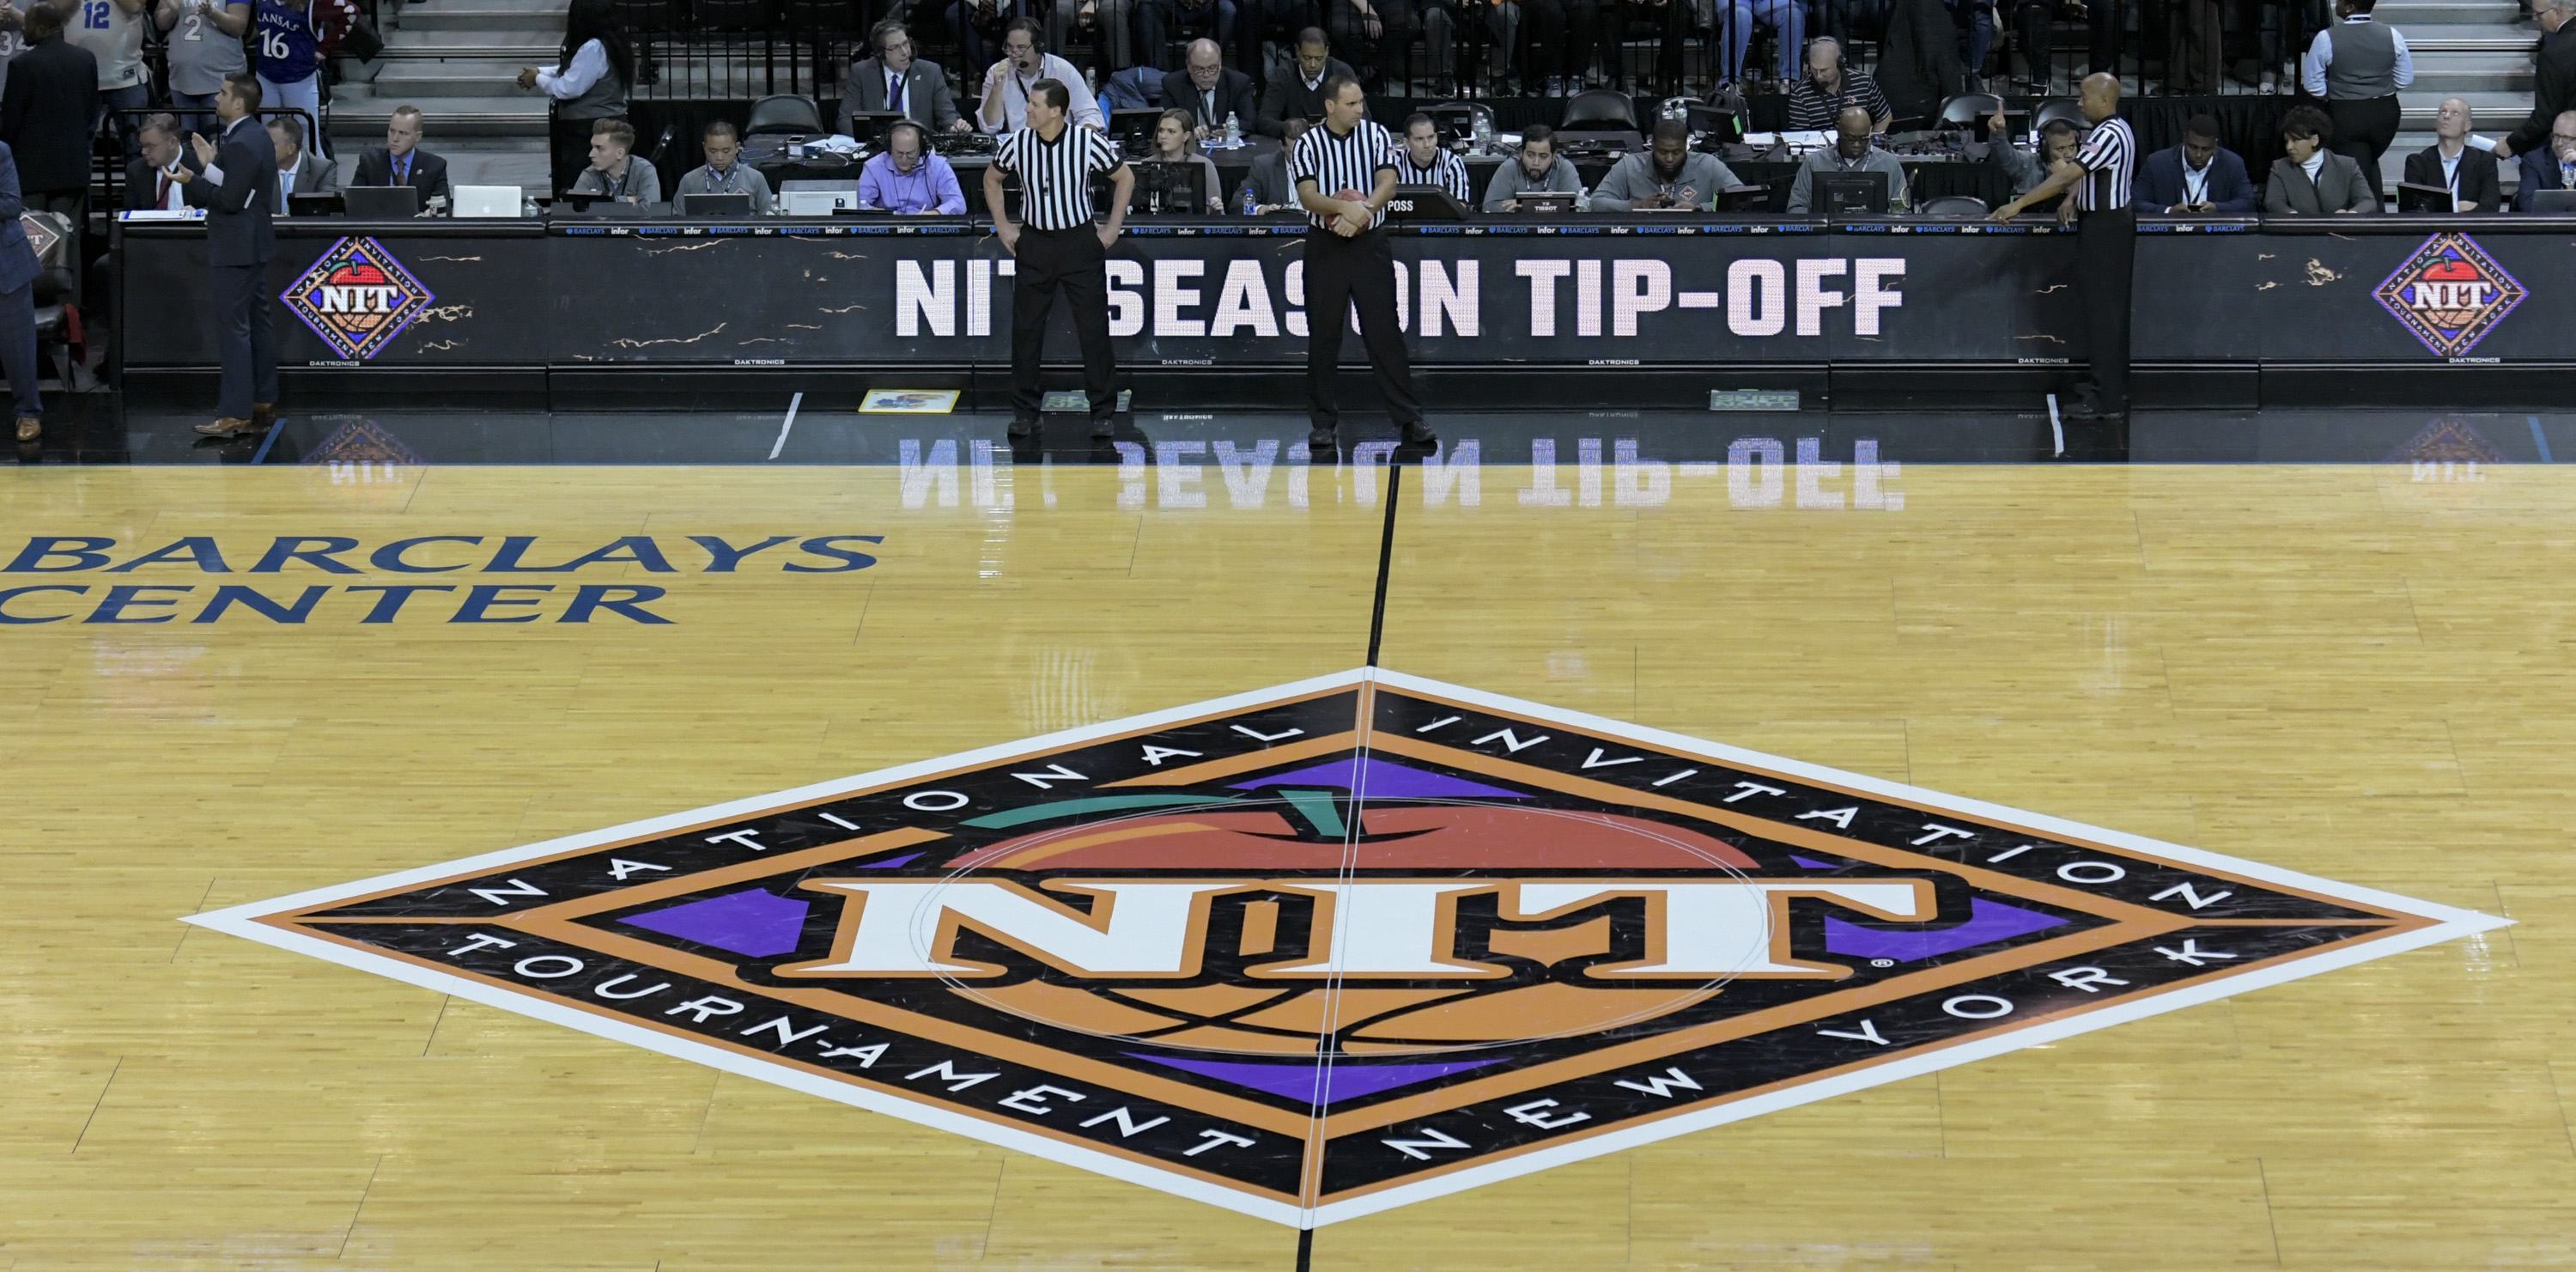 The NIT Tournament logo on the floor at the Barclays Center during the NIT Season Tip-Off on Nov. 21, 2018 in the Brooklyn borough of New York City.